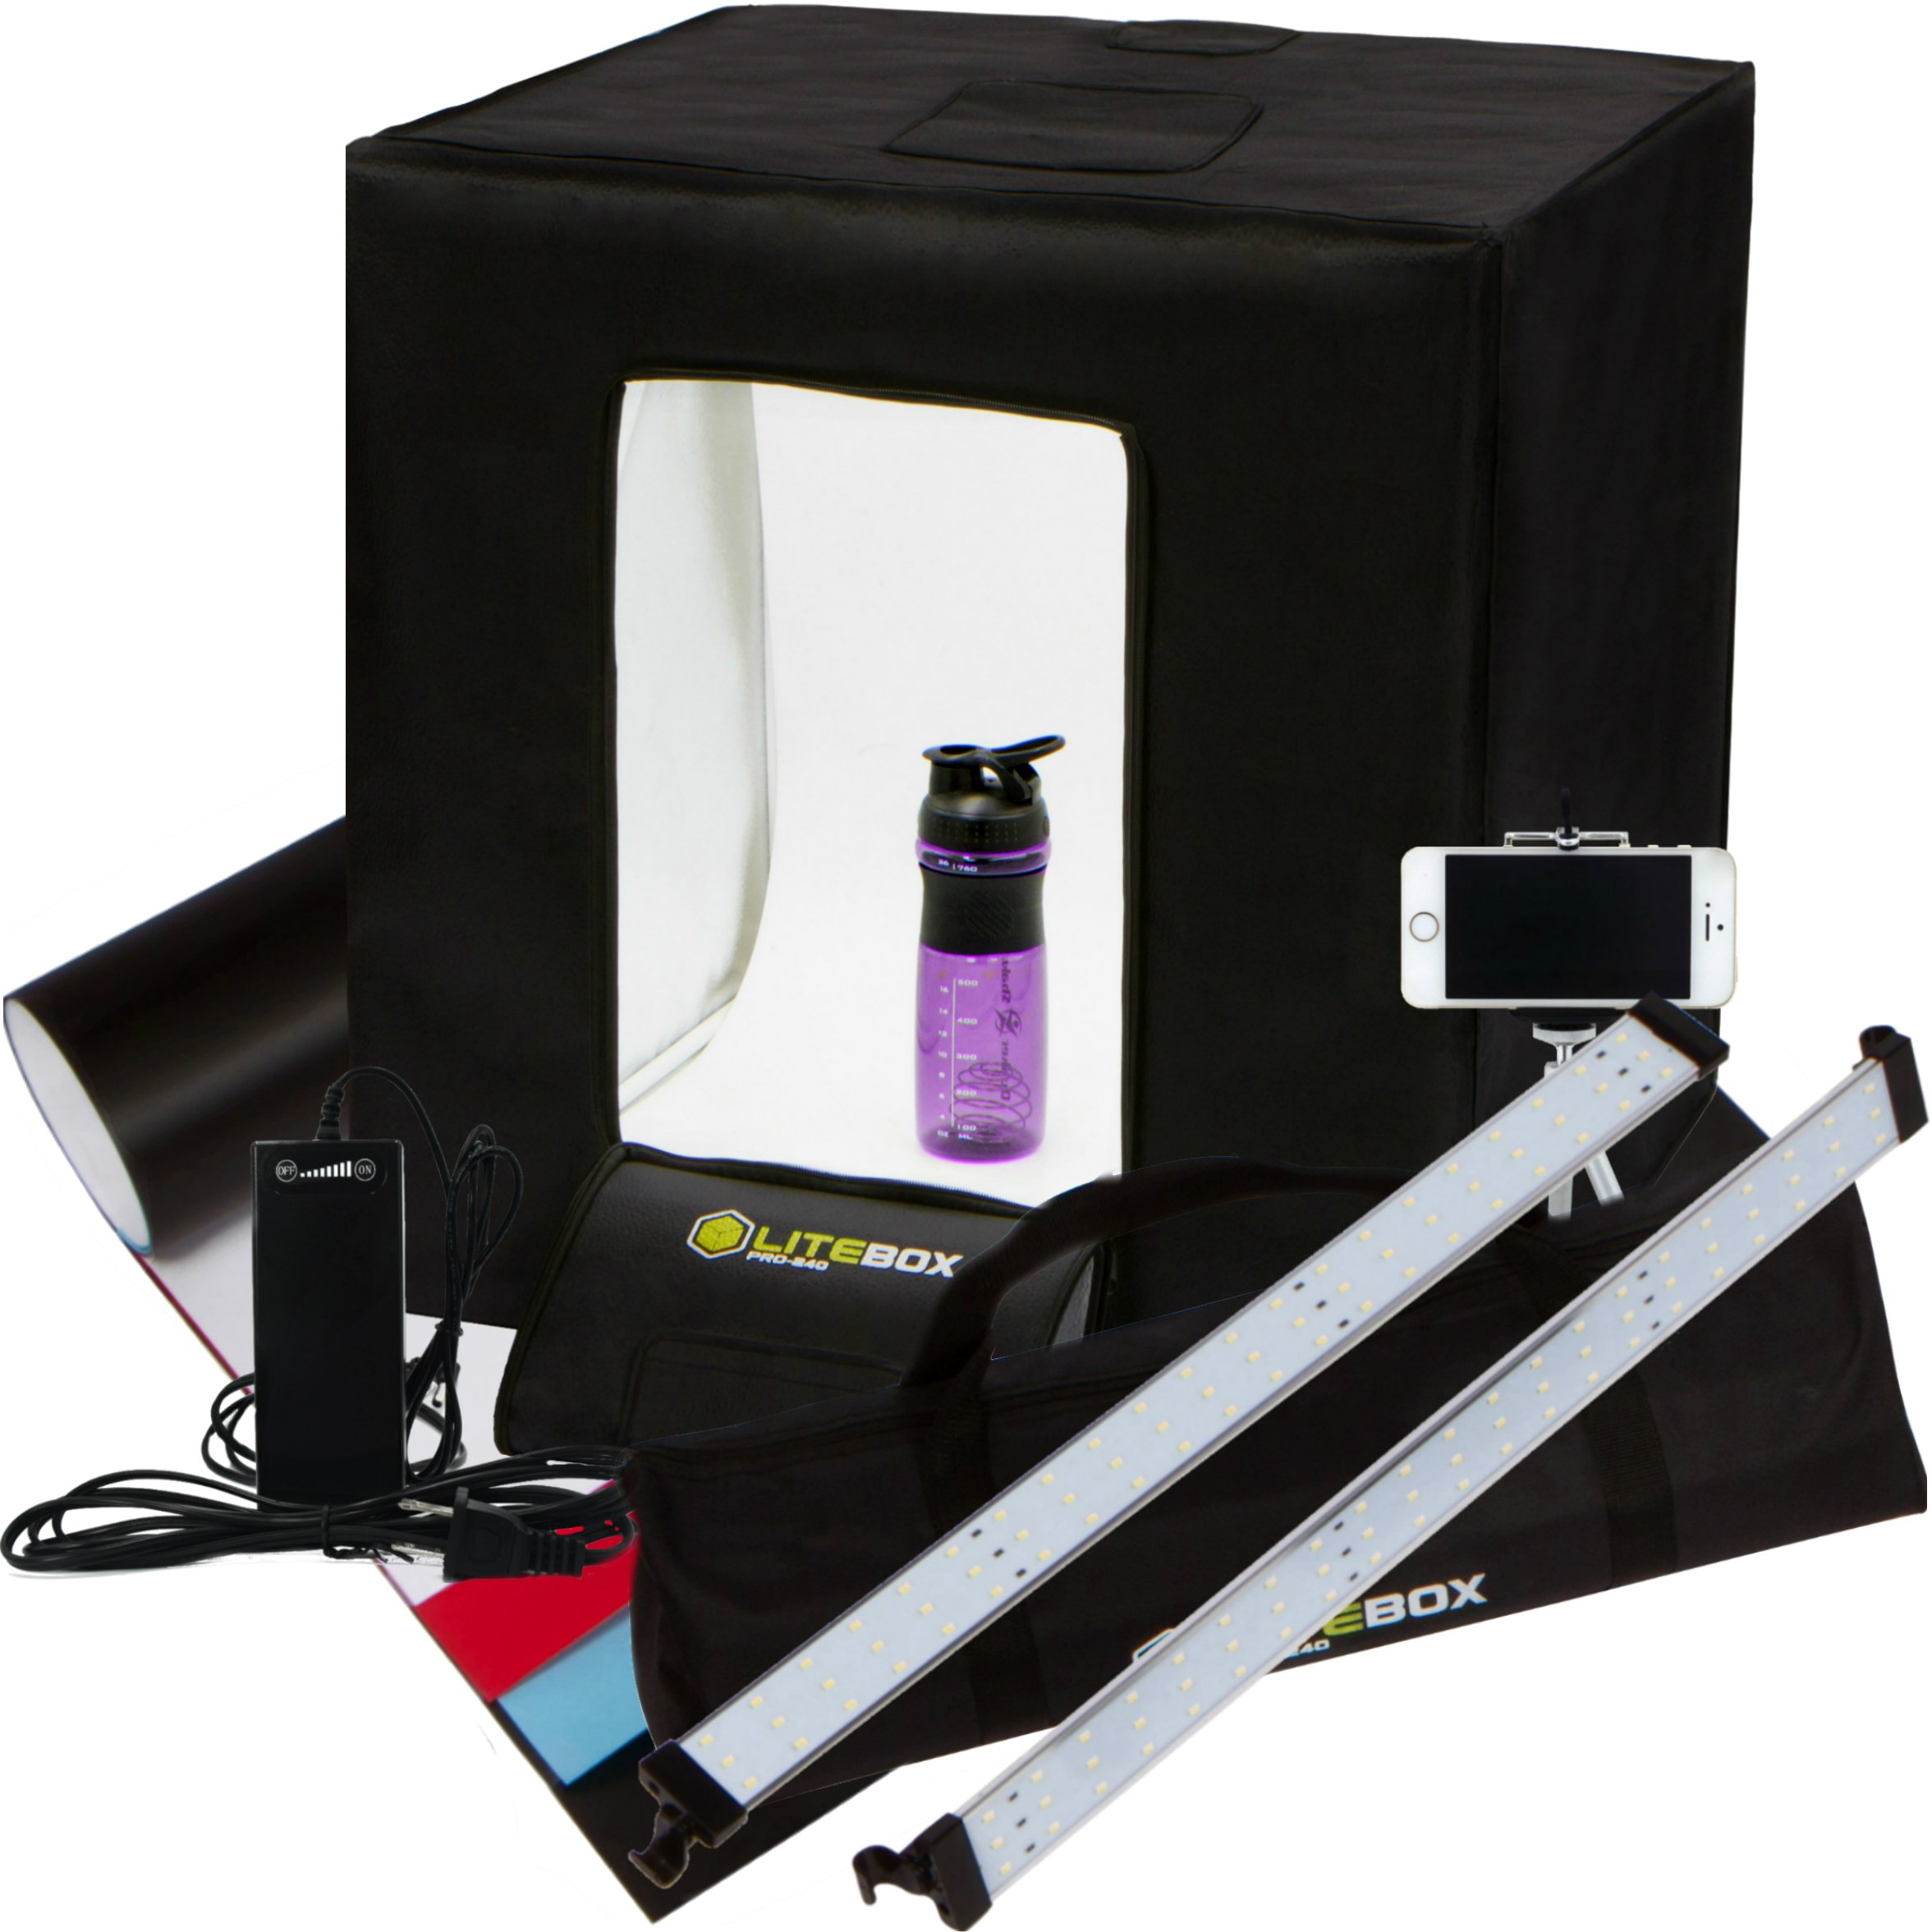 LITEBOX Pro-240: Large 24'' x 24'' LED Photo Studio Lighting Kit in a Box - 4 Seamless PVC Backdrops, Diffuser Panel (for Shiny Surfaces), Camera Tripod, & Travel Bag all included!